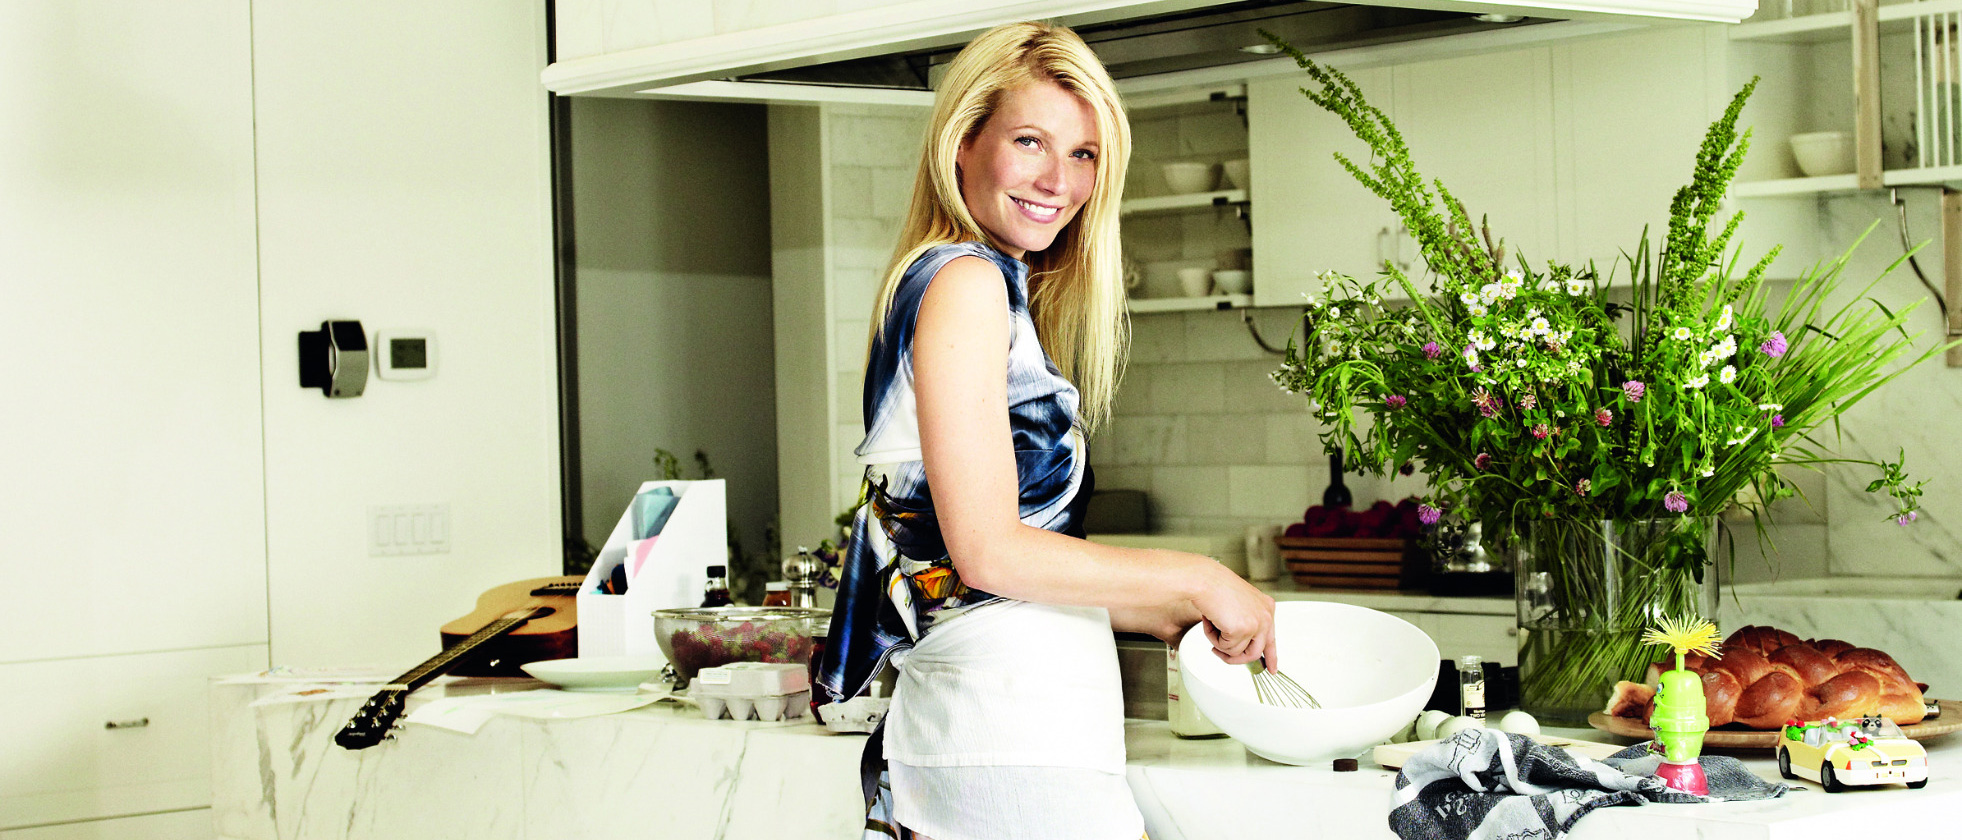 3 Easy Recipes From Gwyneth Paltrow's New Cookbook